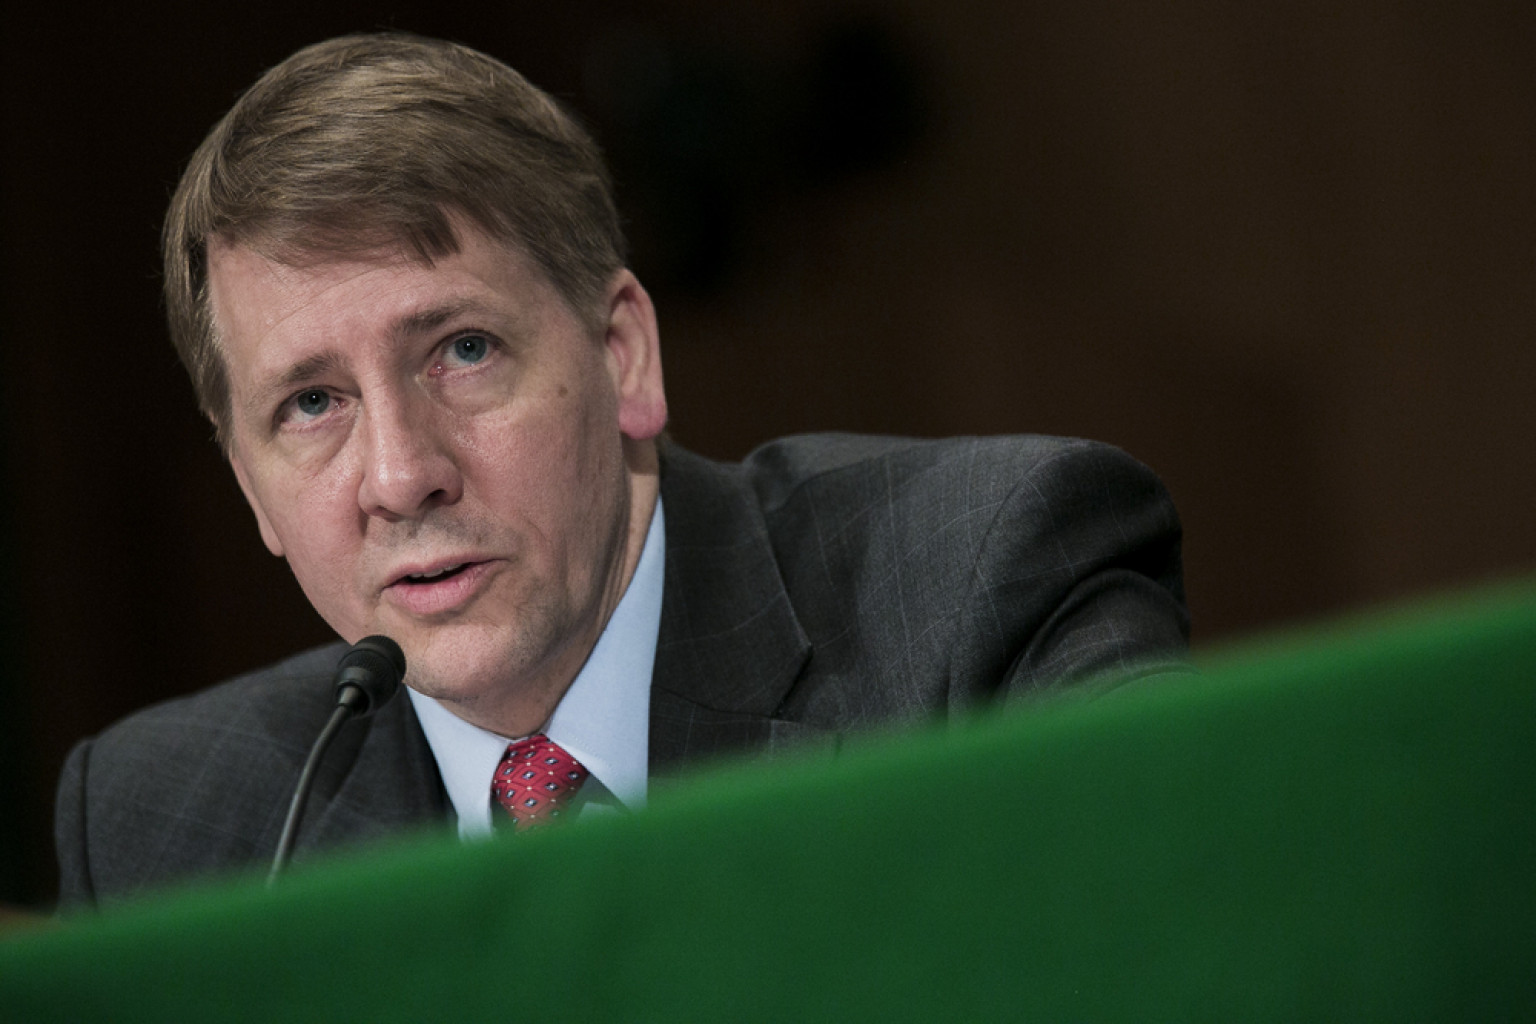 Richard cordray pictures news information from the web - Consumer financial protection bureau wikipedia ...